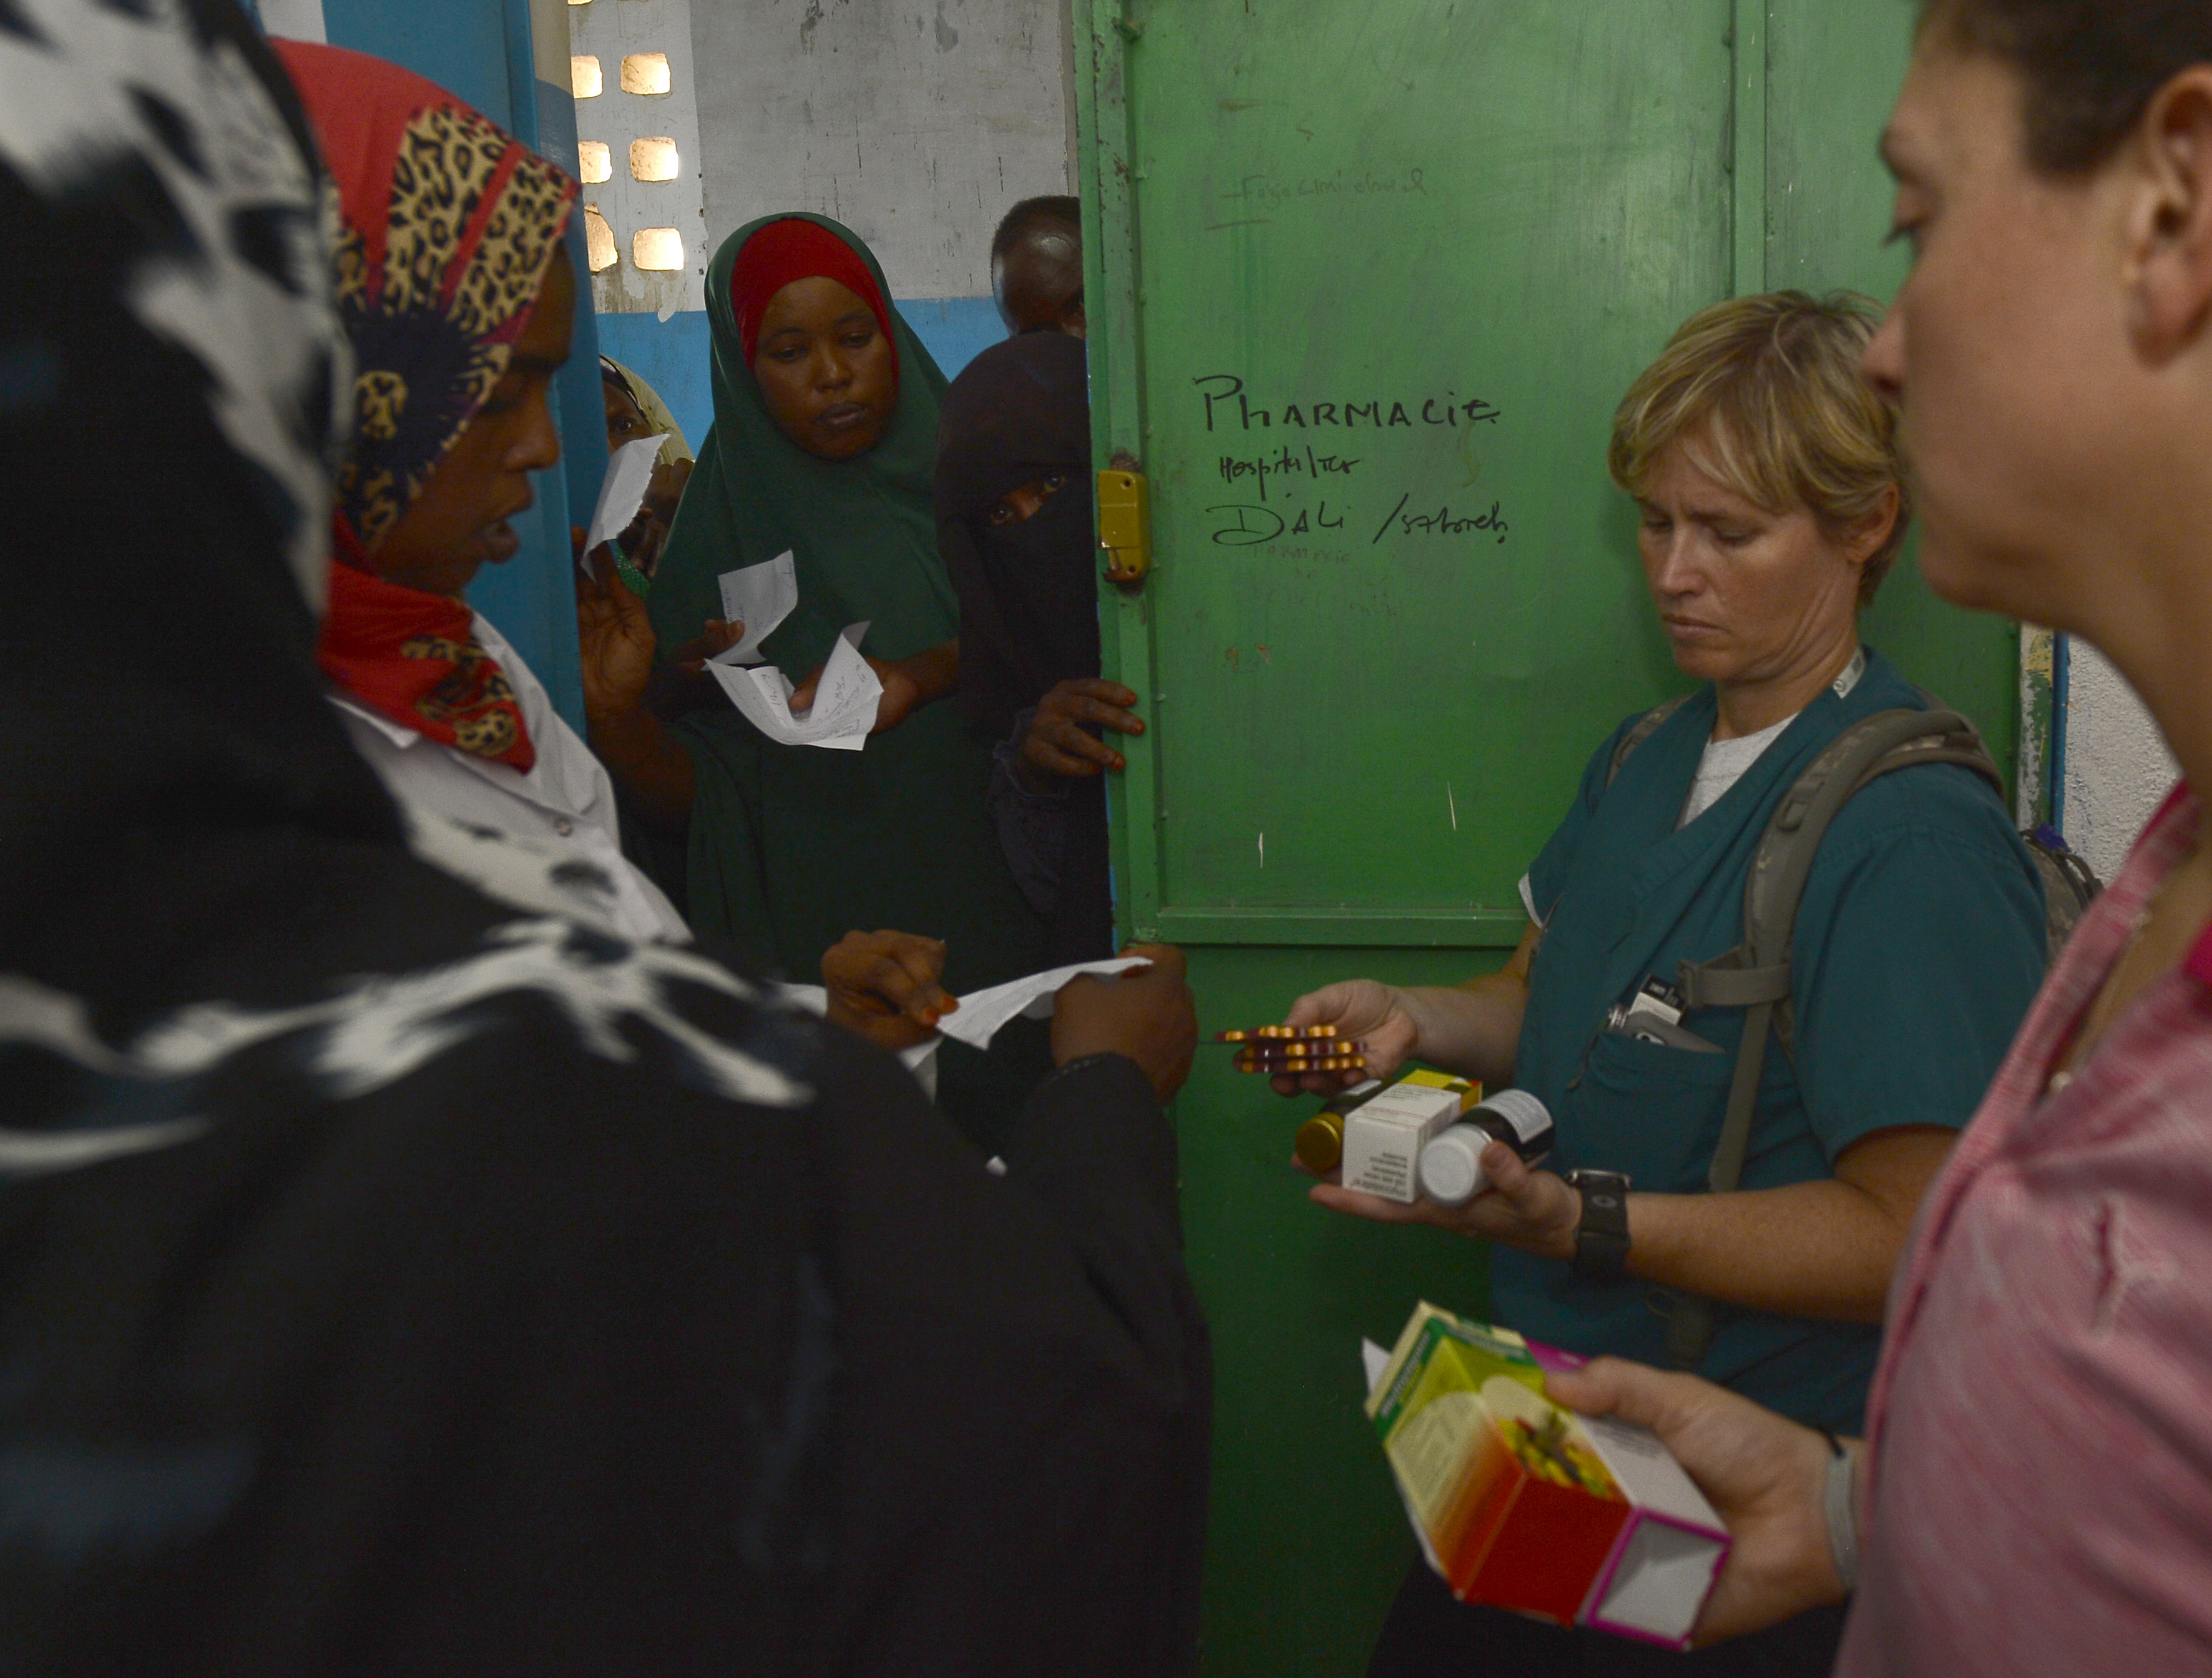 U.S. Army Lt. Col. Patricia Rasmussen, 404th Civil Affairs Battalion veterinarian, center, helps to distribute pharmaceutical medicine during a Medical Civic Action Program at Ali Sabieh Medical Clinic in Djibouti, Africa, Sept. 12, 2015. The 404th CA BN team, assigned to Combined Joint Task Force-Horn of Africa, partnered with Djibouti's Ministry of Health to provide specialty medical care to more than 400 Djiboutians. (U.S. Air Force photo by Senior Airman Nesha Humes)